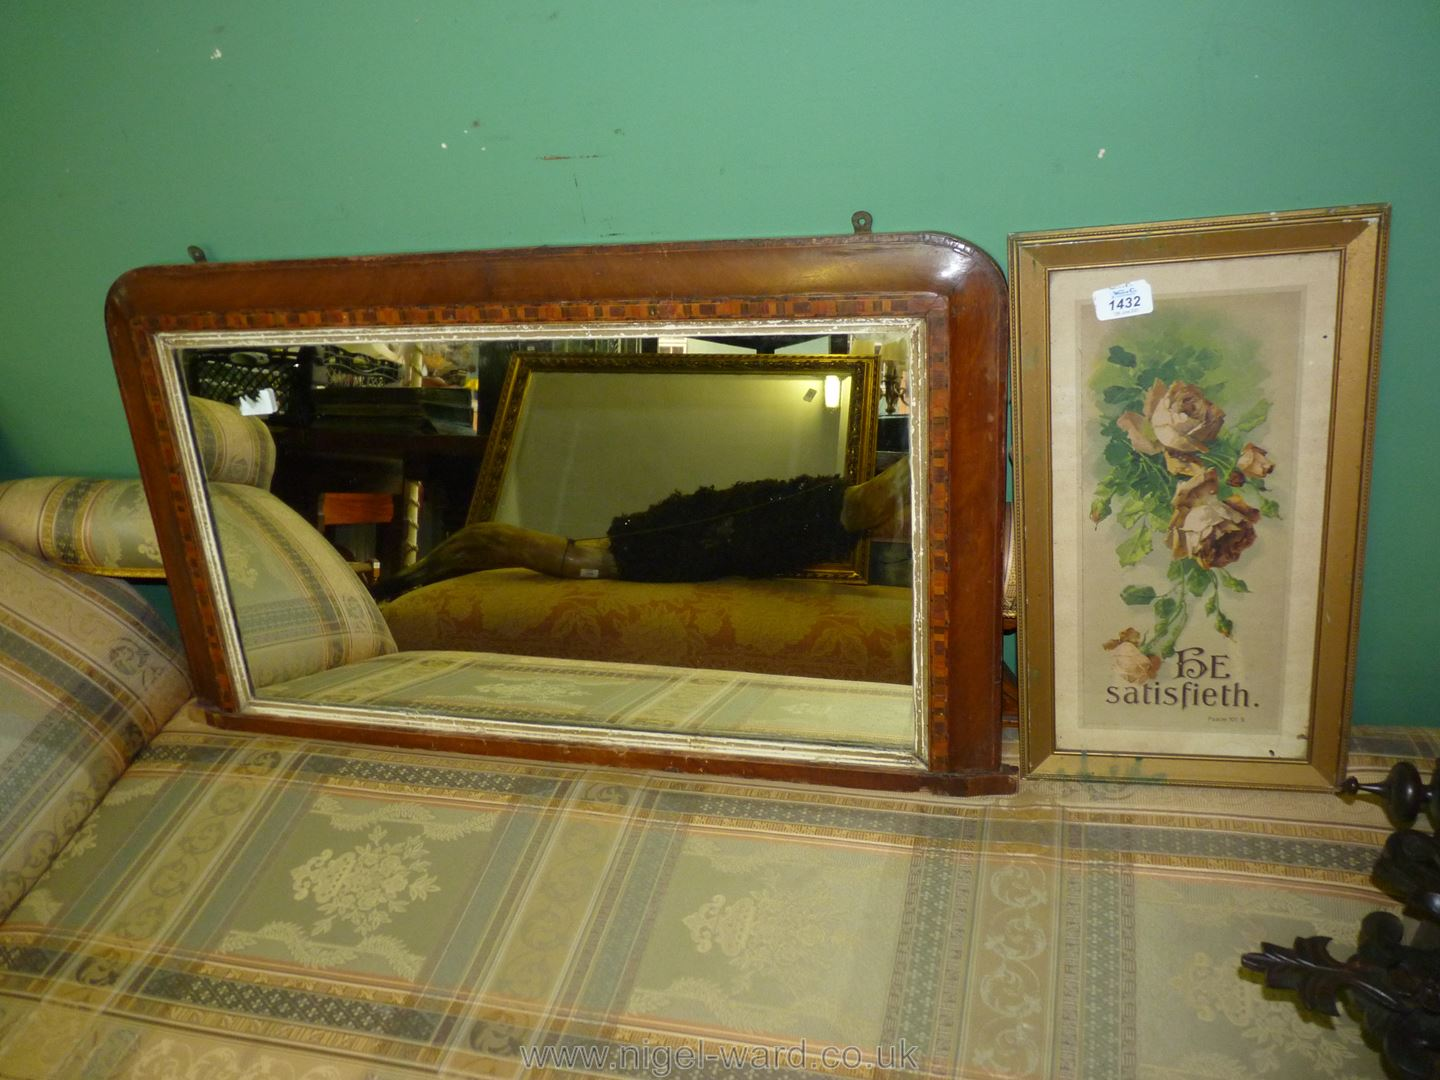 An Edwardian marquetry inlaid Mahogany over mantle mirror together with a similar Era Motto print.